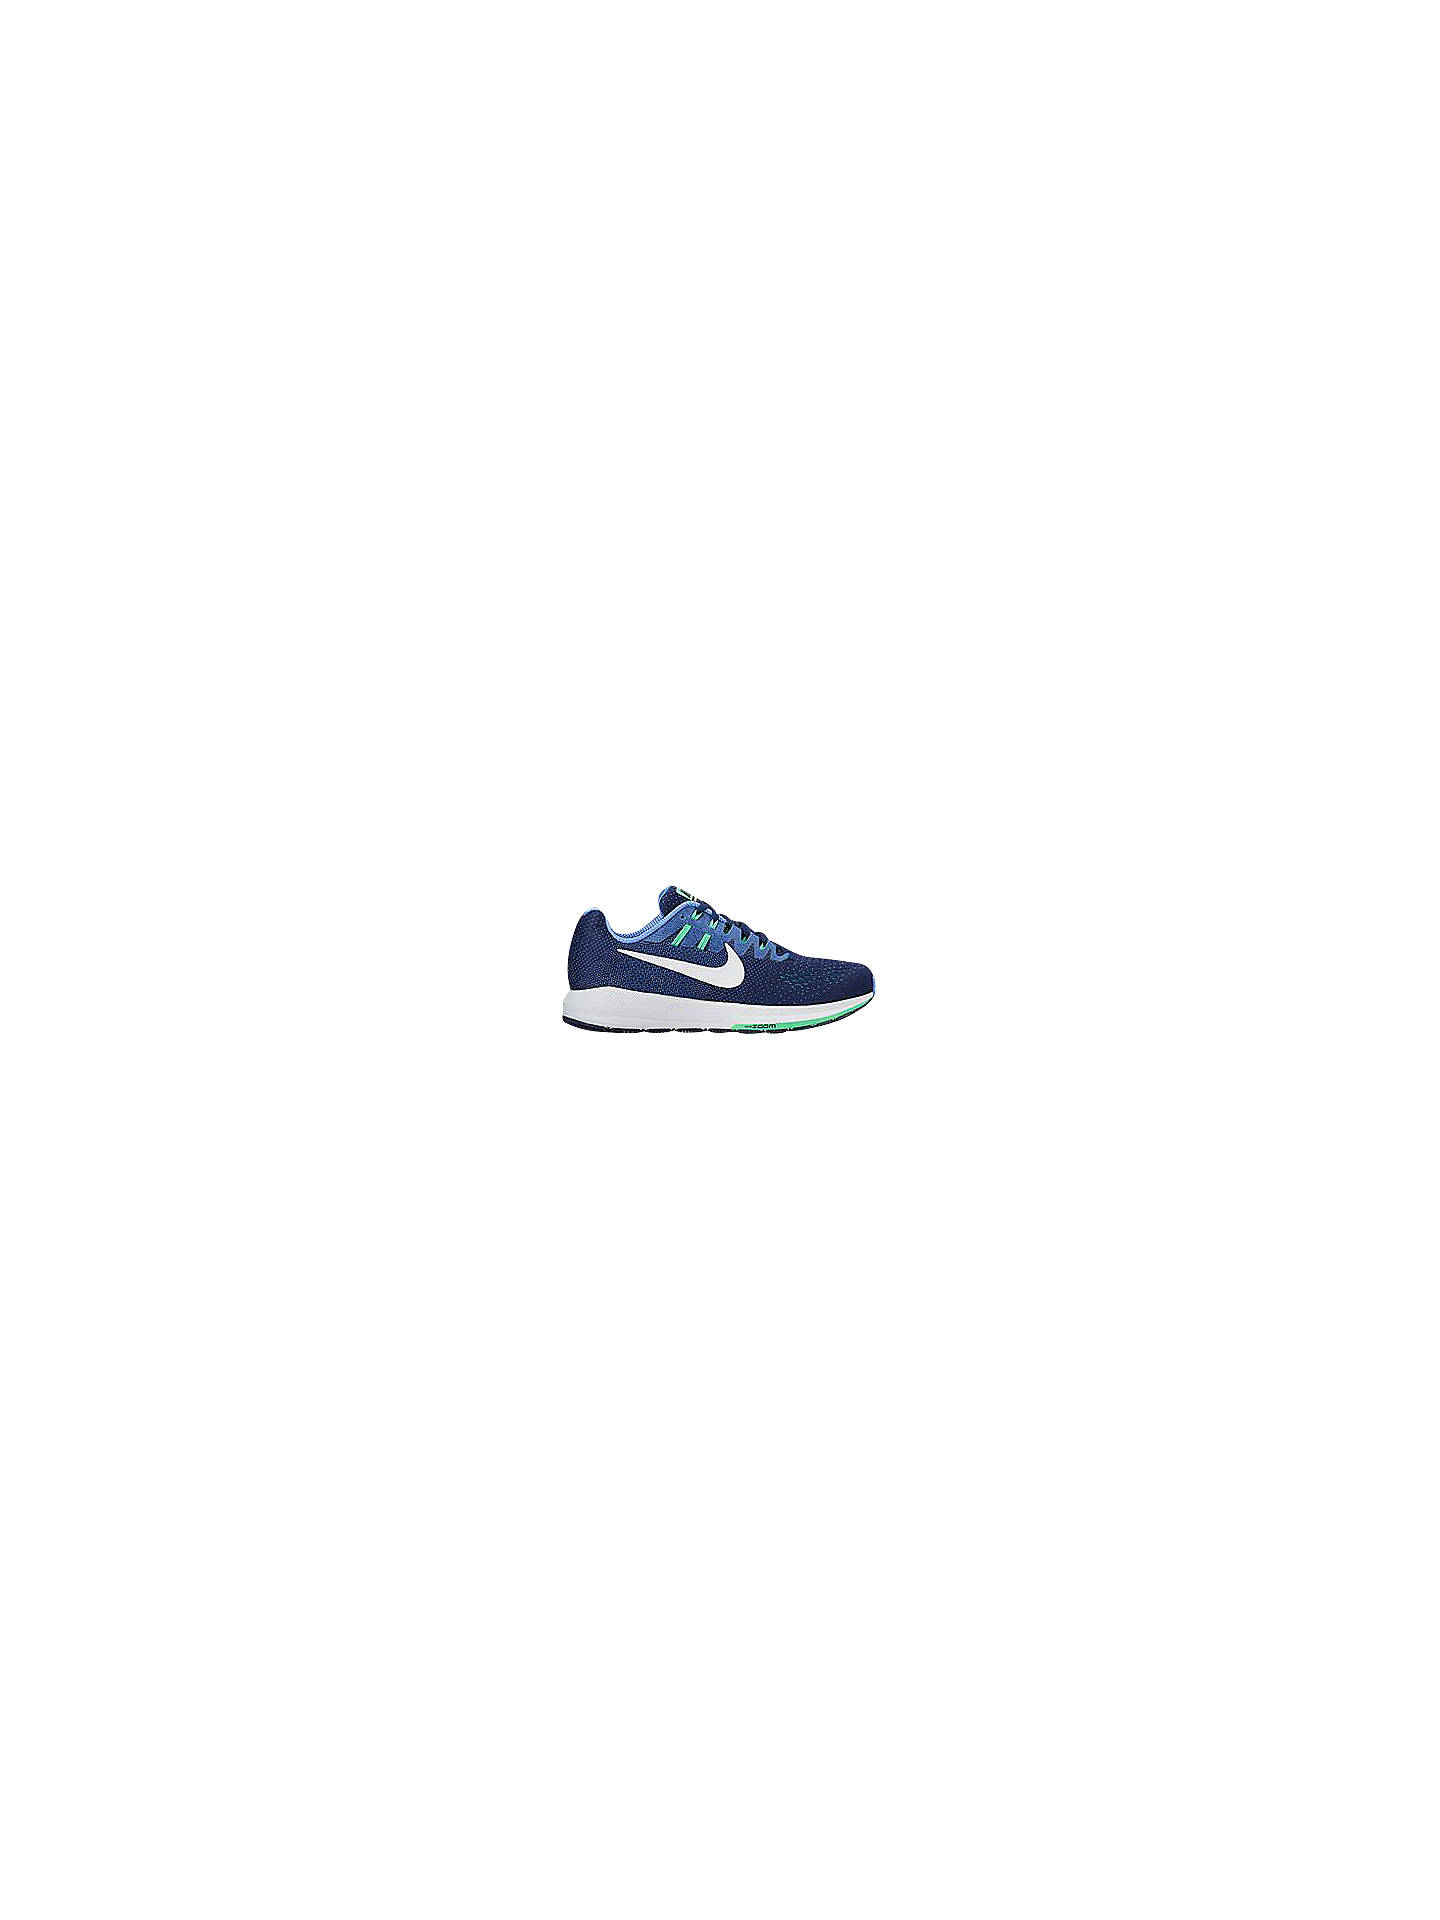 preschool nike Air Zoom Structure 20 Nike Air Zoom Structure 20 Men's Running Shoes, Binary Blue/Hyper ...